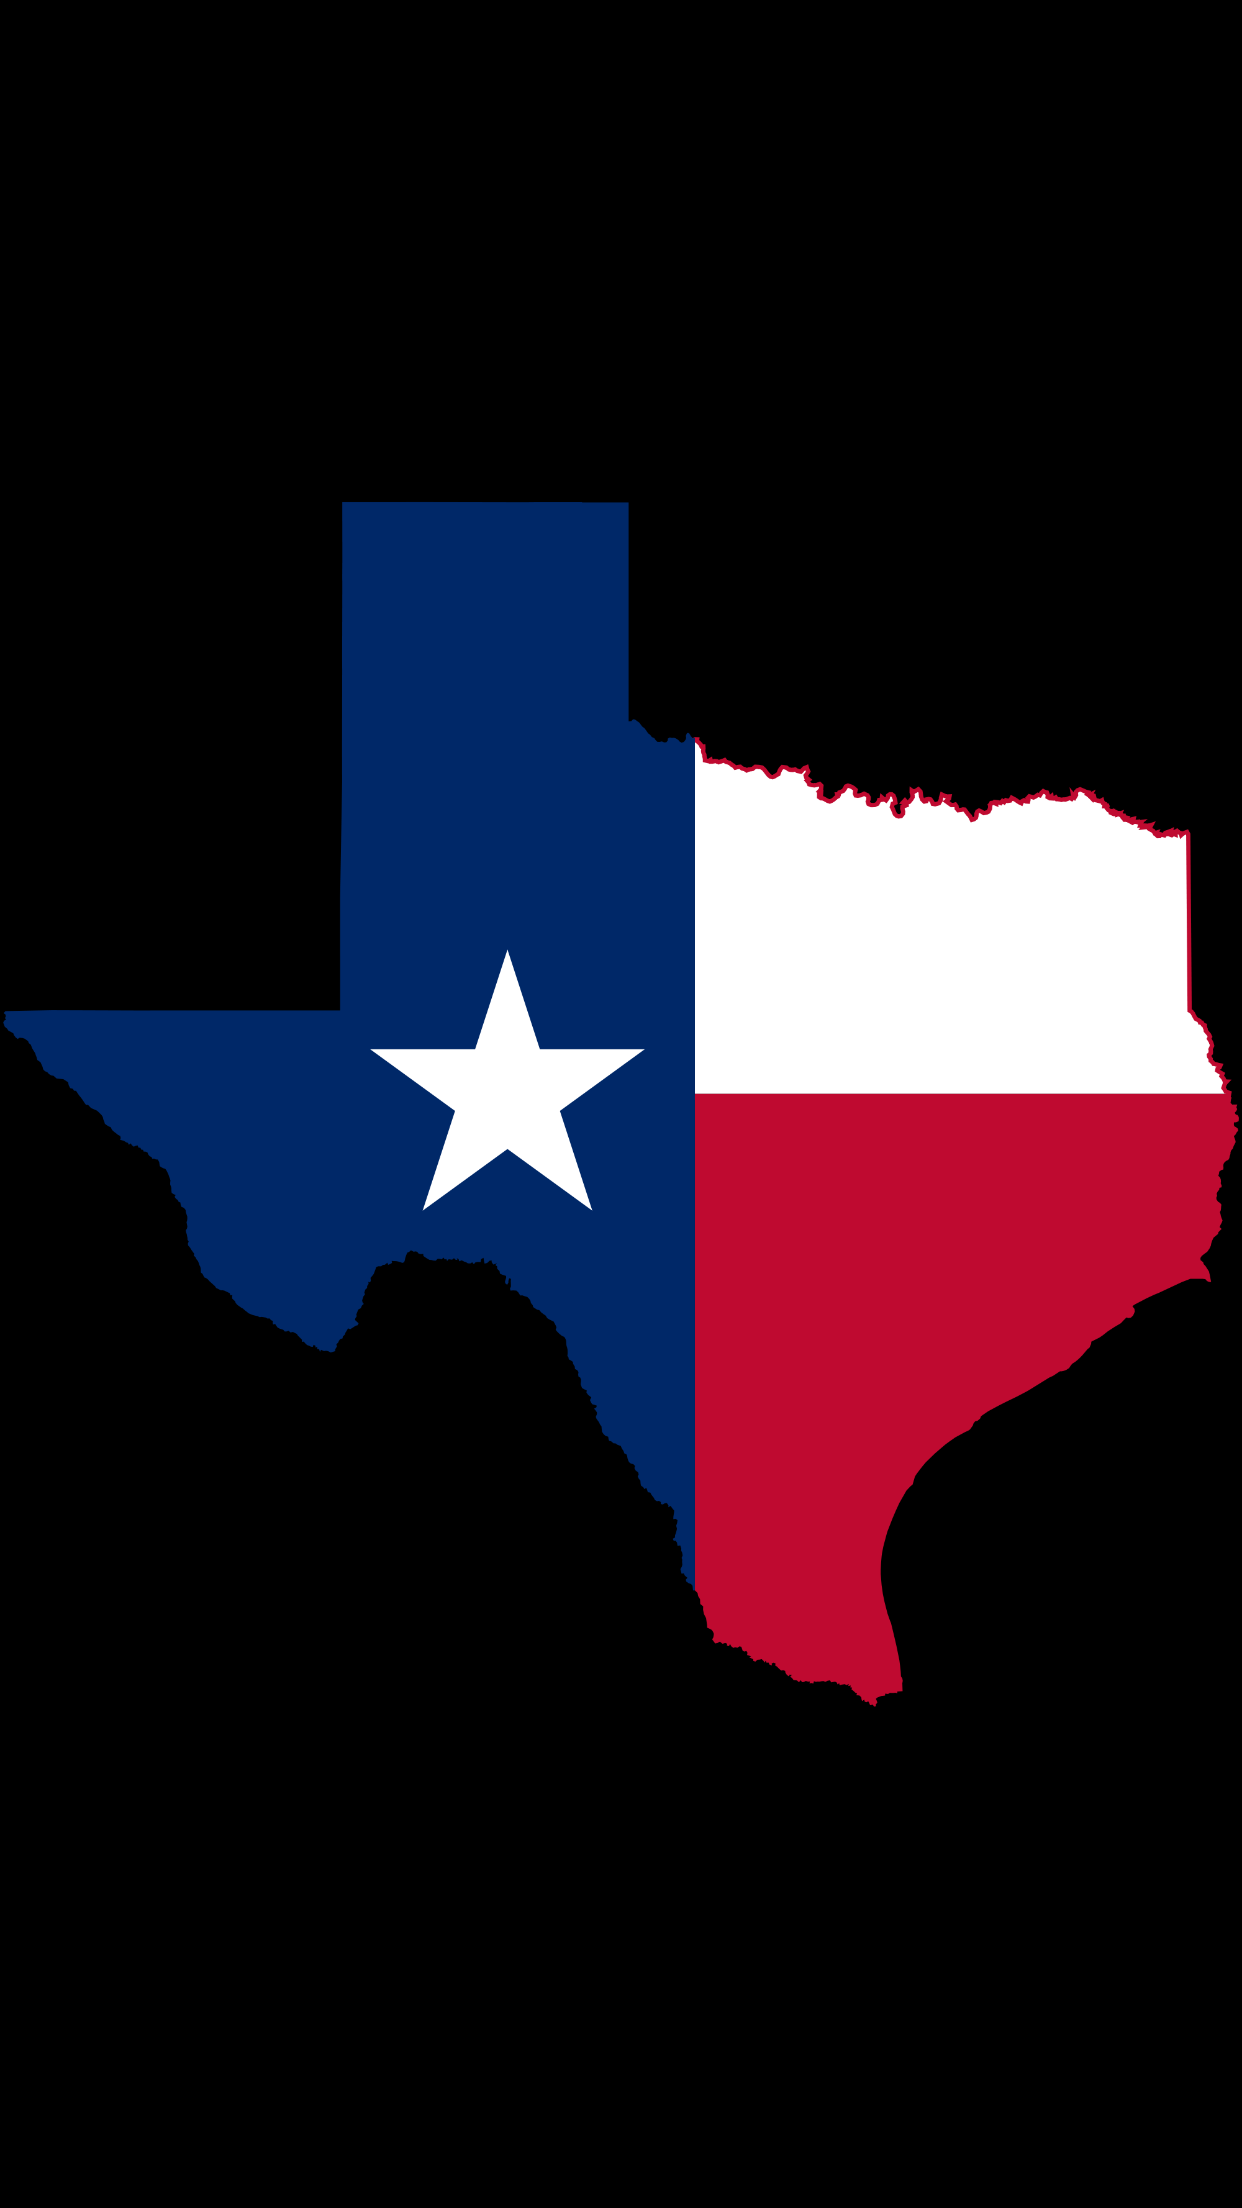 Apple Iphone 6 Plus Texas Wallpaper Texas Flags Tire Cover